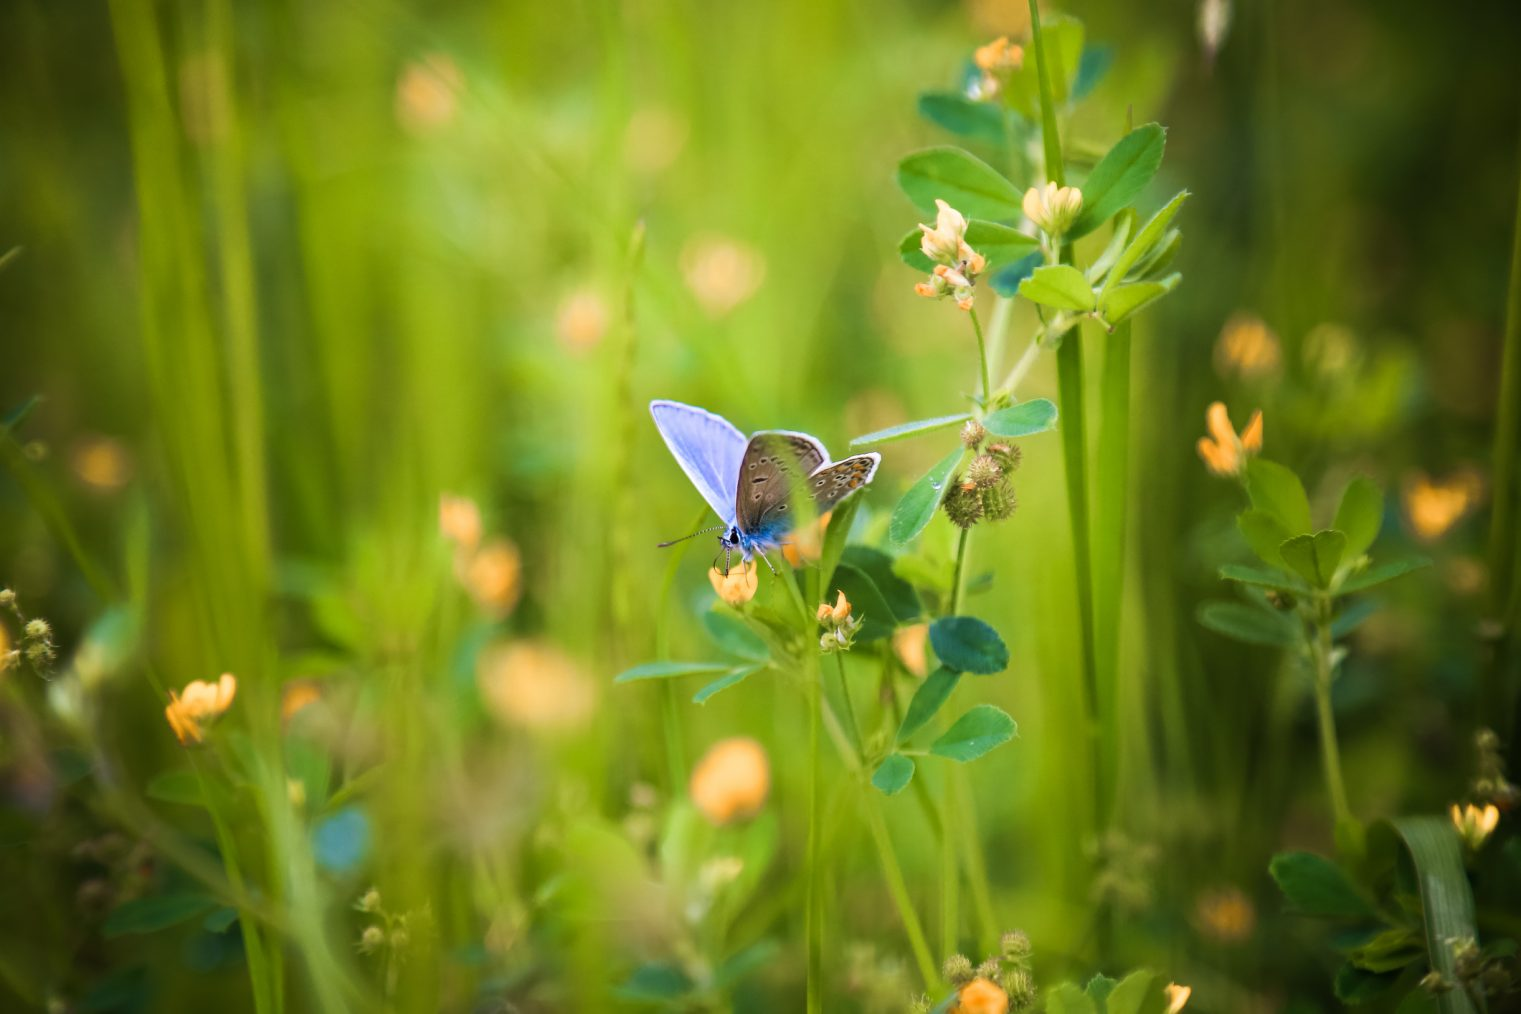 Common Blue Butterfly (Polyommatus icarus) nectaring on wildflower